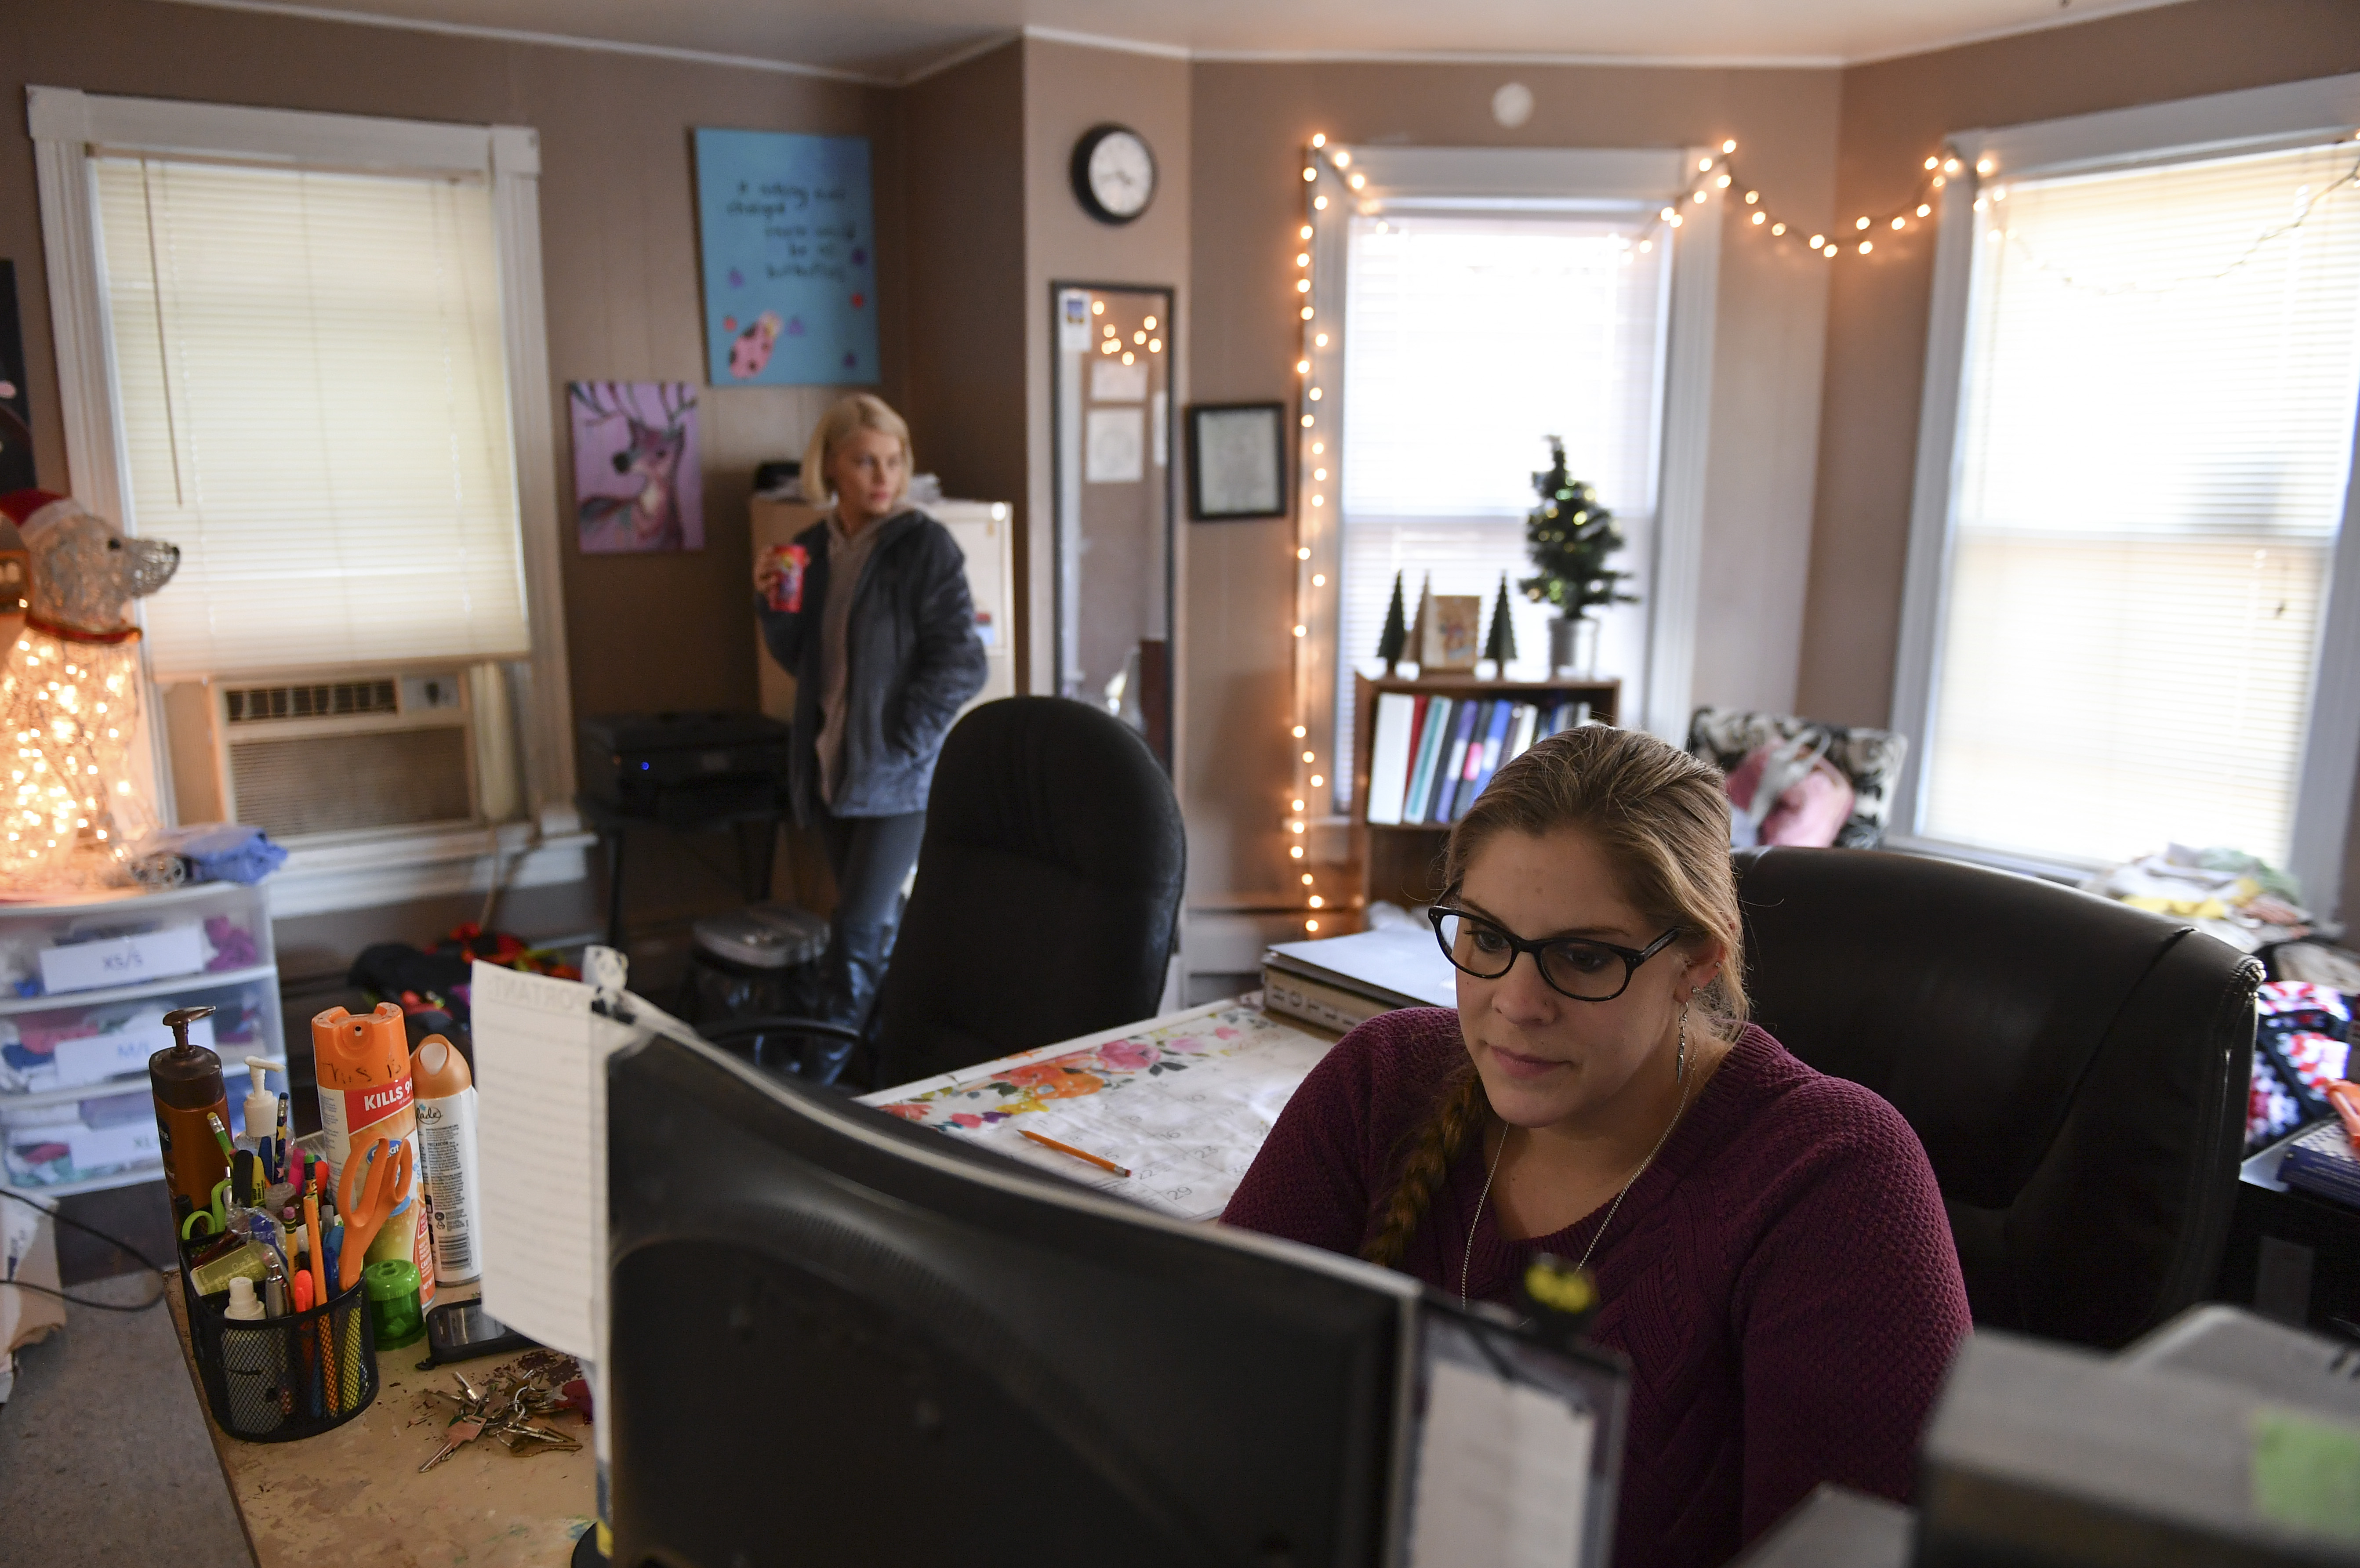 Mandi Howell, shelter manager, right, and shelter advocate Nycole Cooper, left, work at the Eastern Panhandle Empowerment Center women's shelter during the partial government shutdown. Federal grants have been extended until March, but the facility is operating on the edge with a staff uncertain of the future.